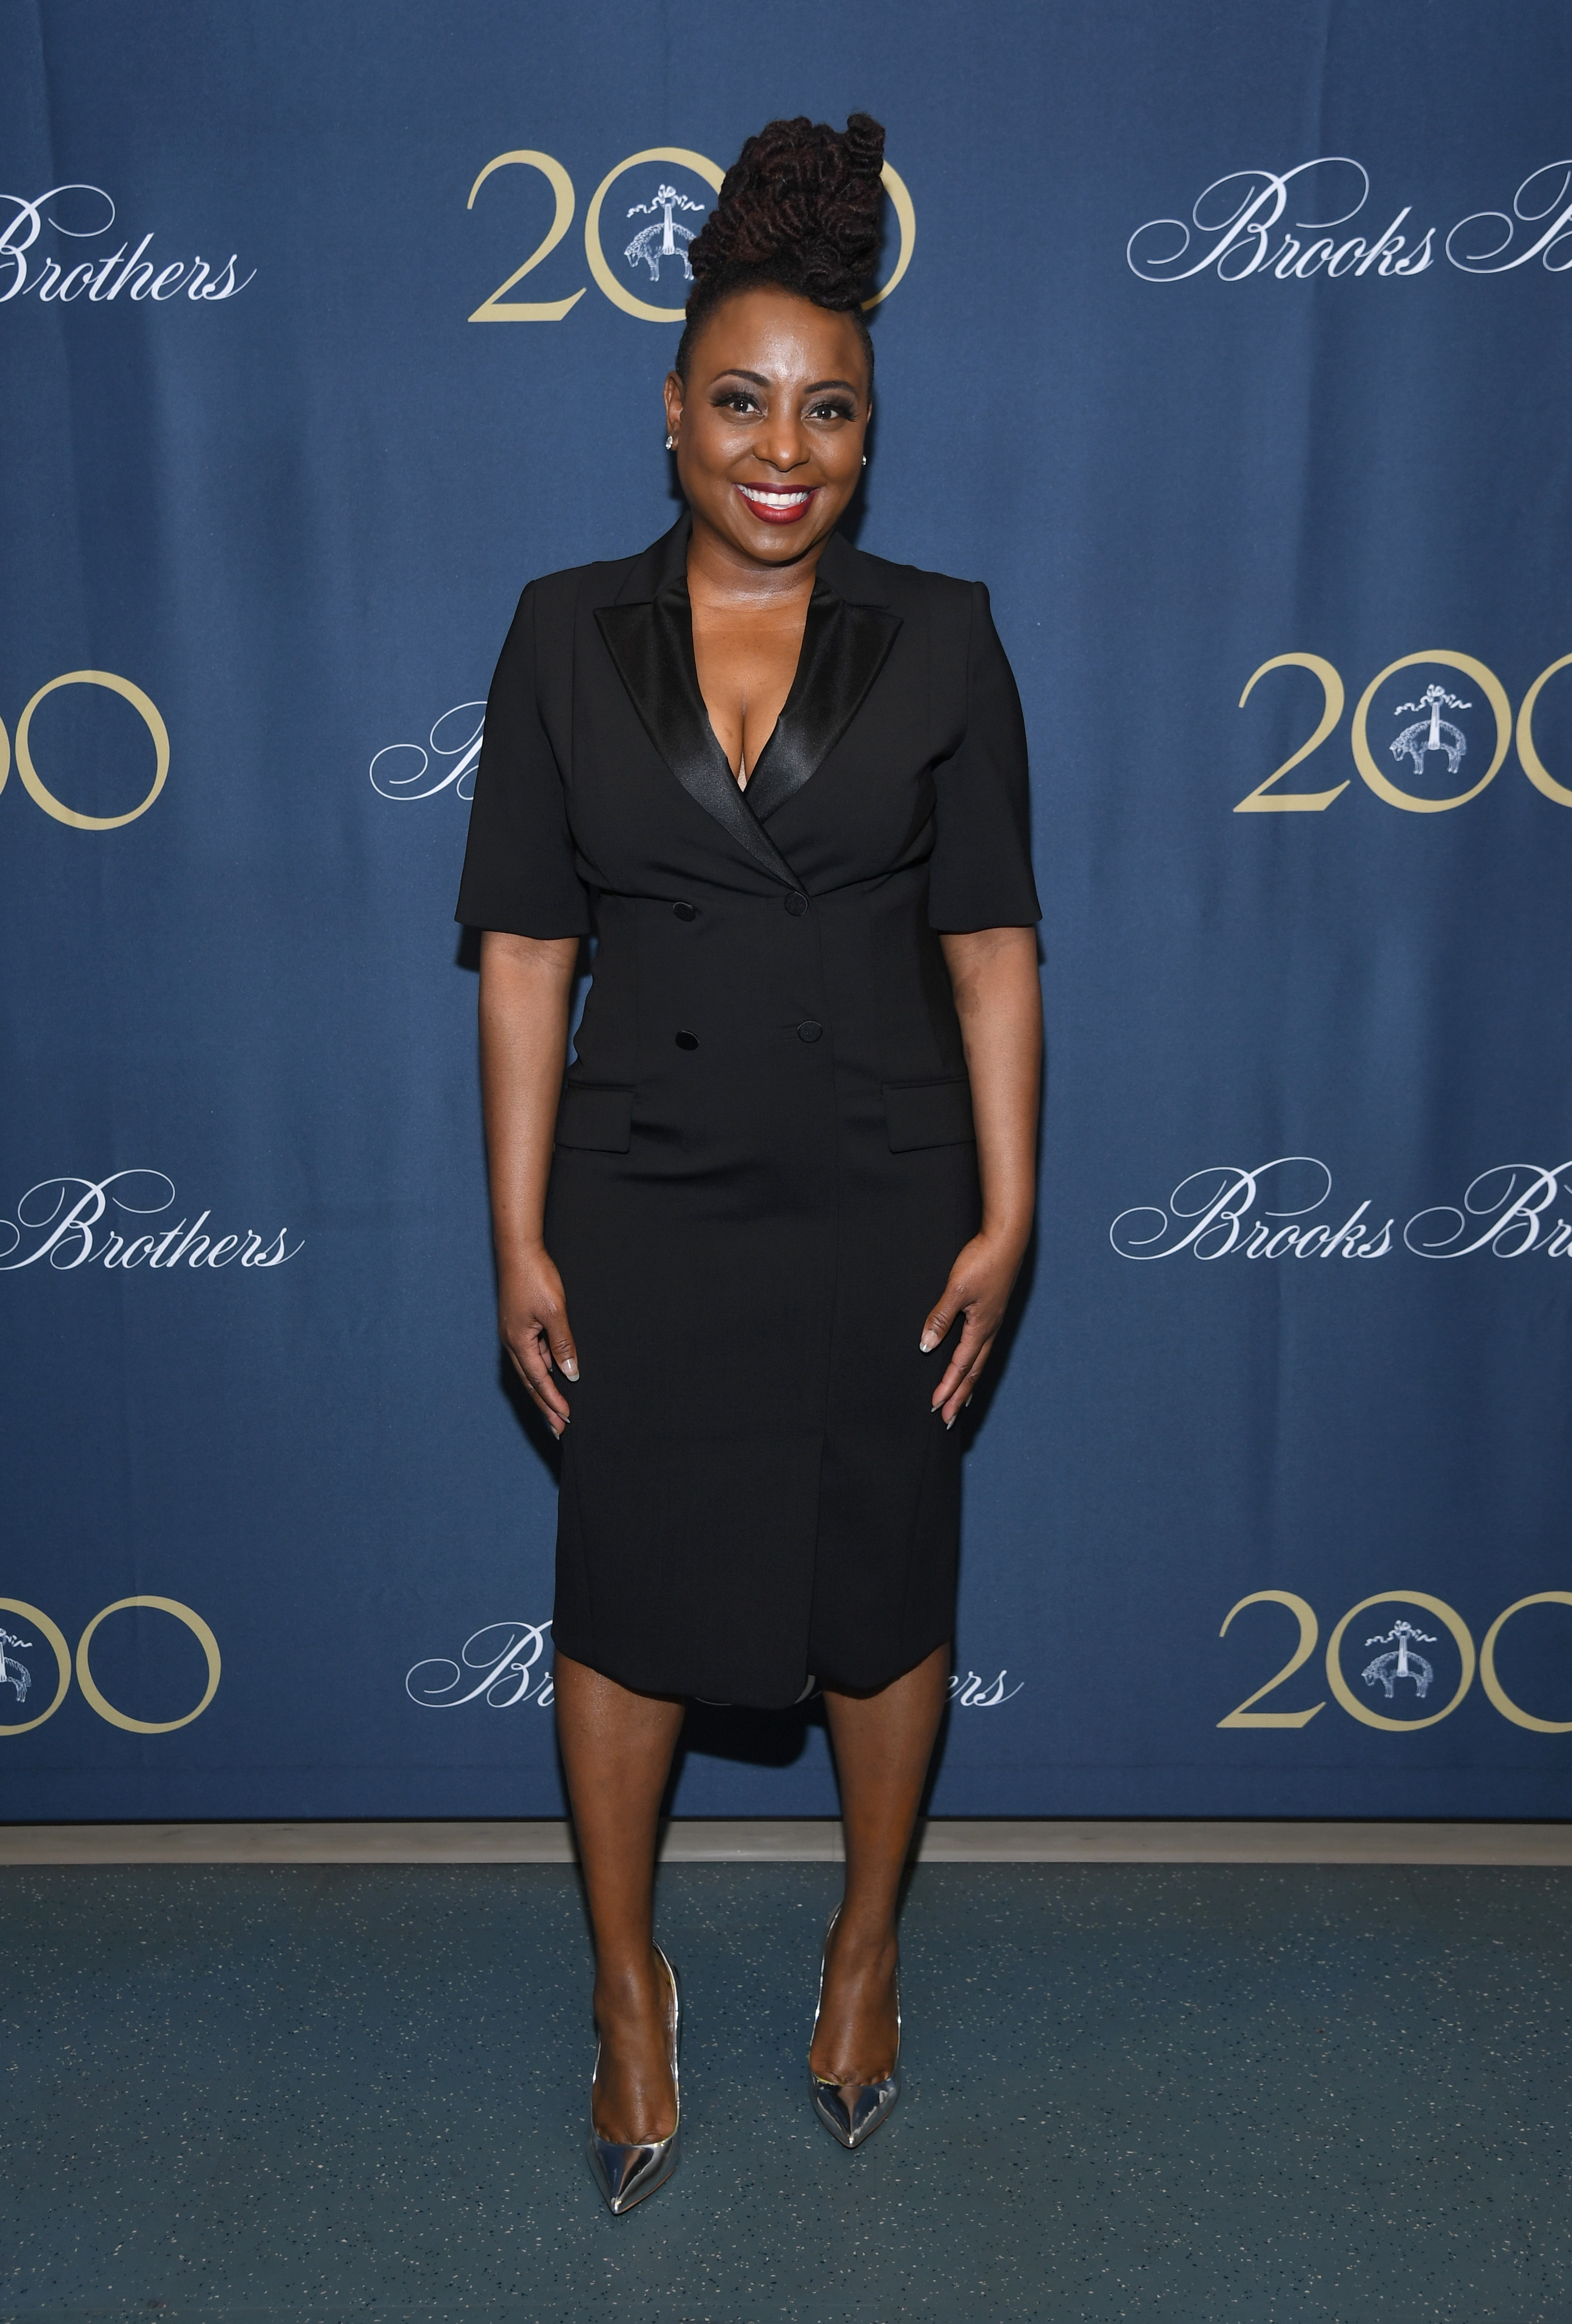 Brooks Brothers Bicentennial Celebration At Jazz At Lincoln Center, New York City